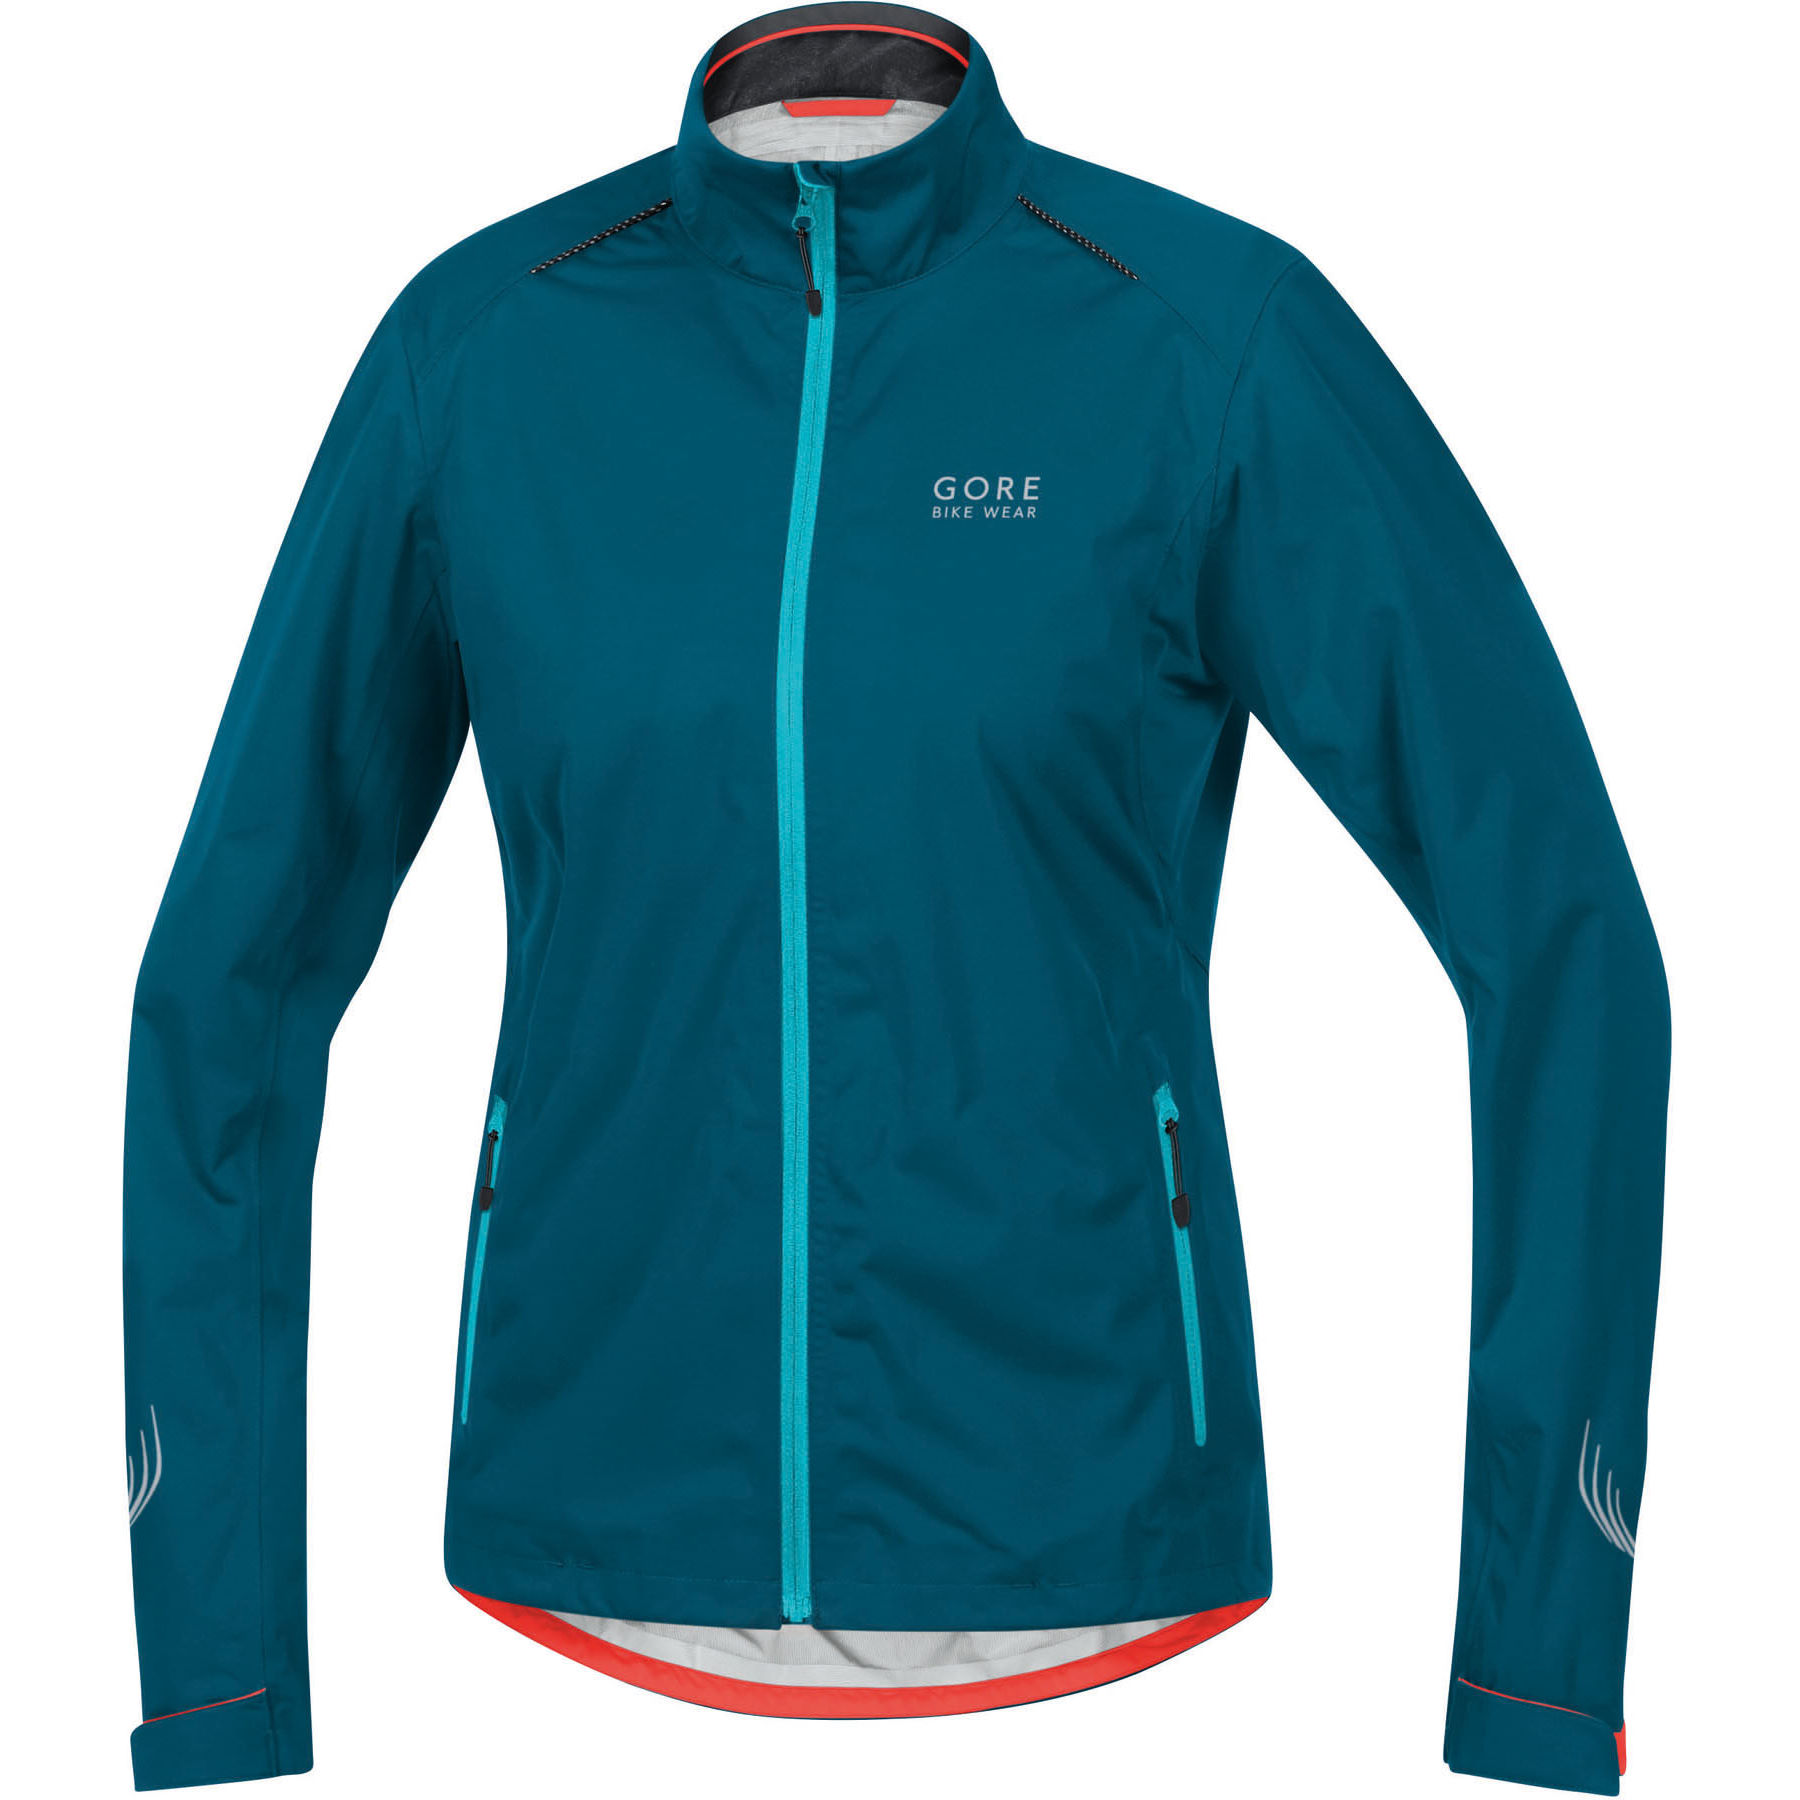 Coupe-vents vélo   Gore Bike Wear   Women's Element Gore-Tex Active Shell Jacket   Wiggle France